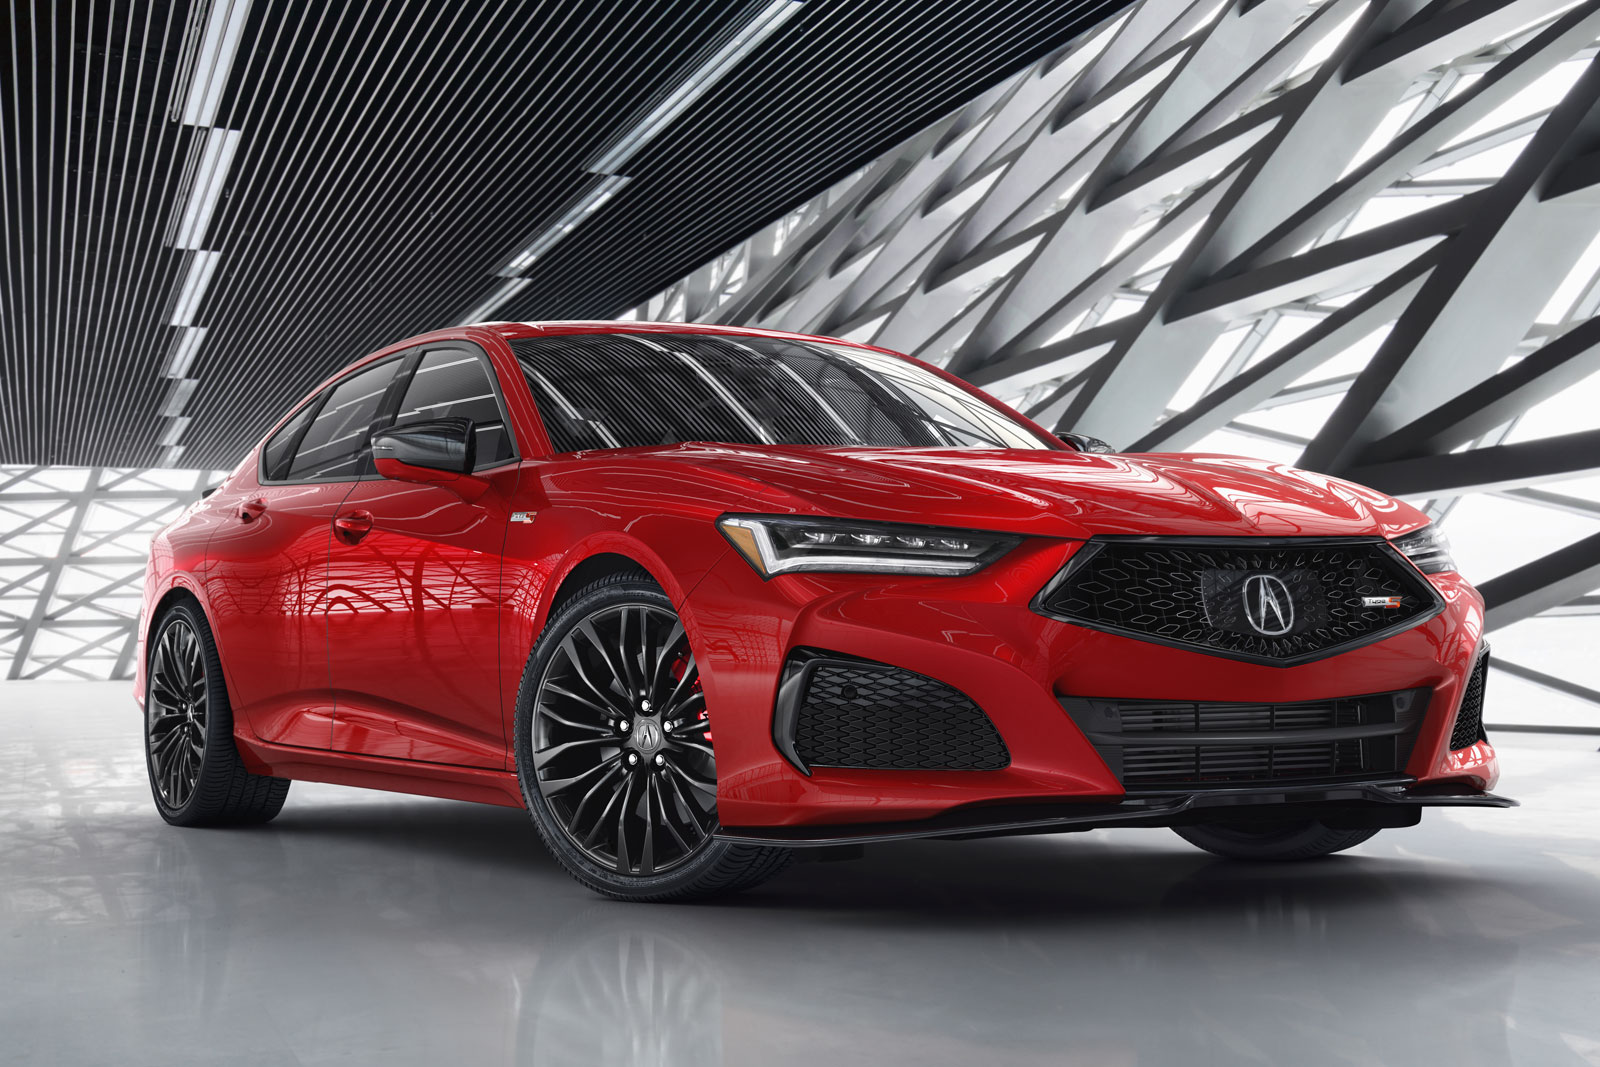 The 2021 Acura TLX is Seeking Brand Redemption - Motor ...